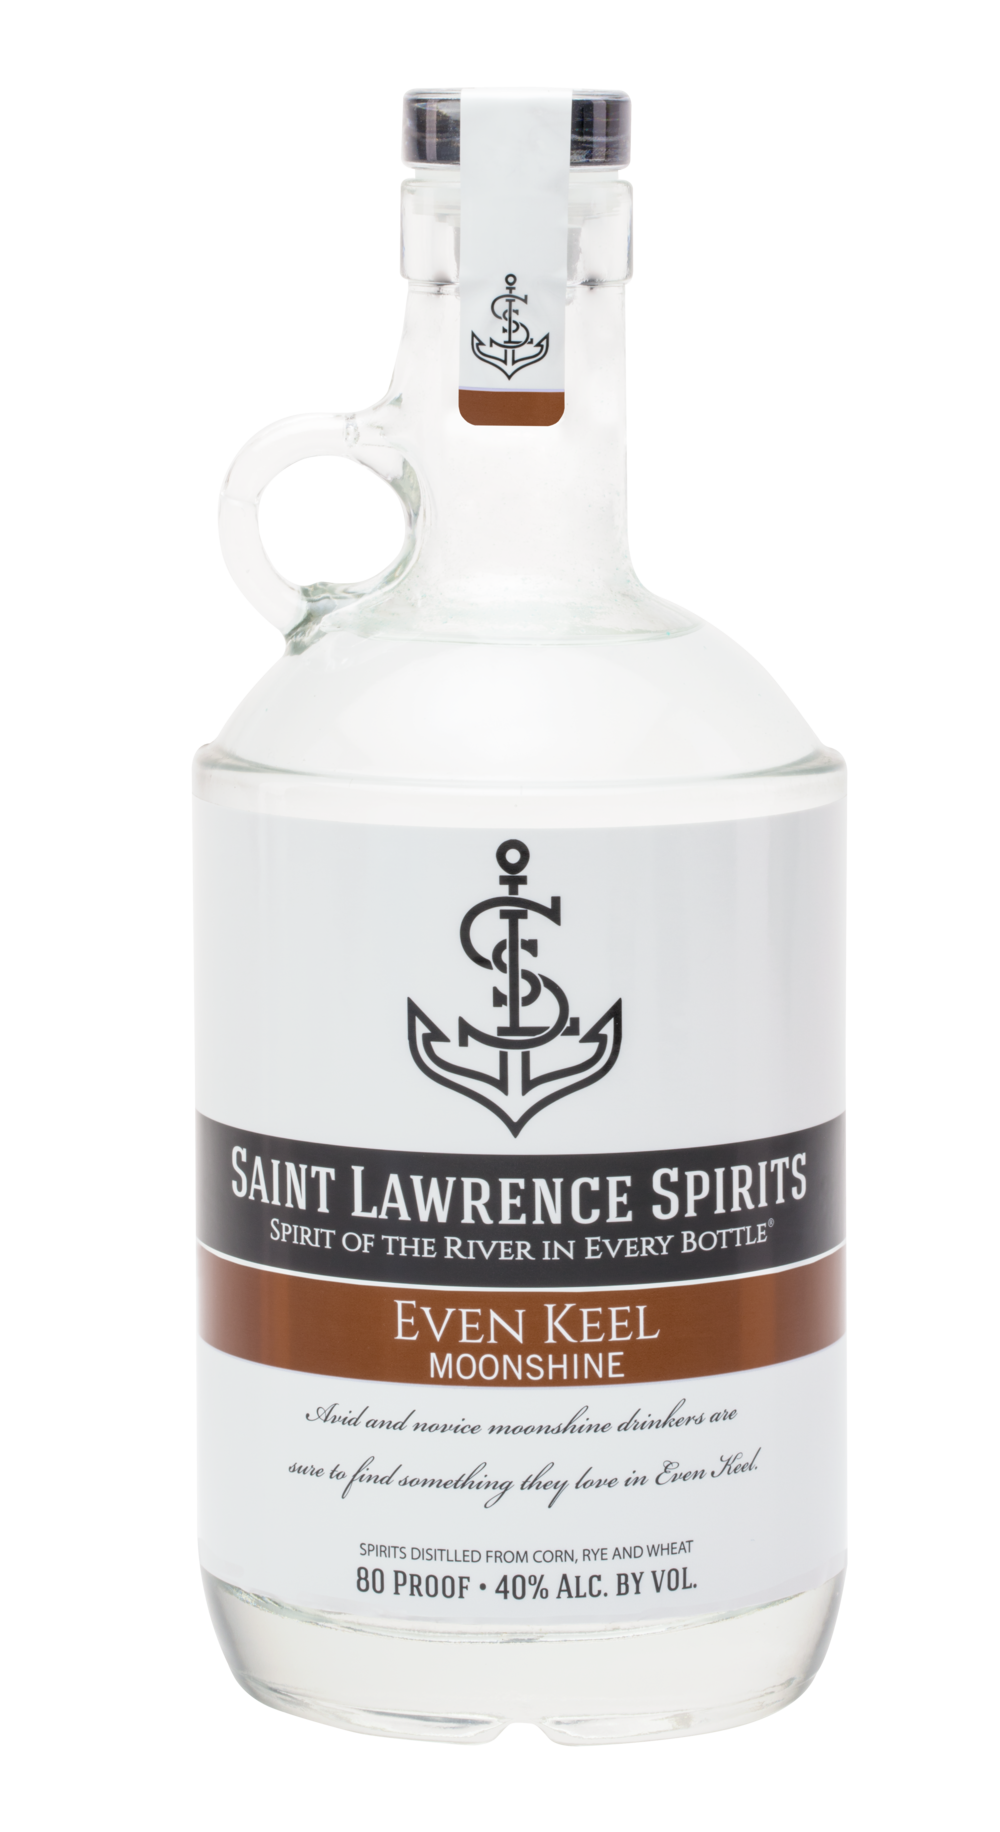 Even Keel Moonshine - 80 Proof. Wheat, Rye, Peppery